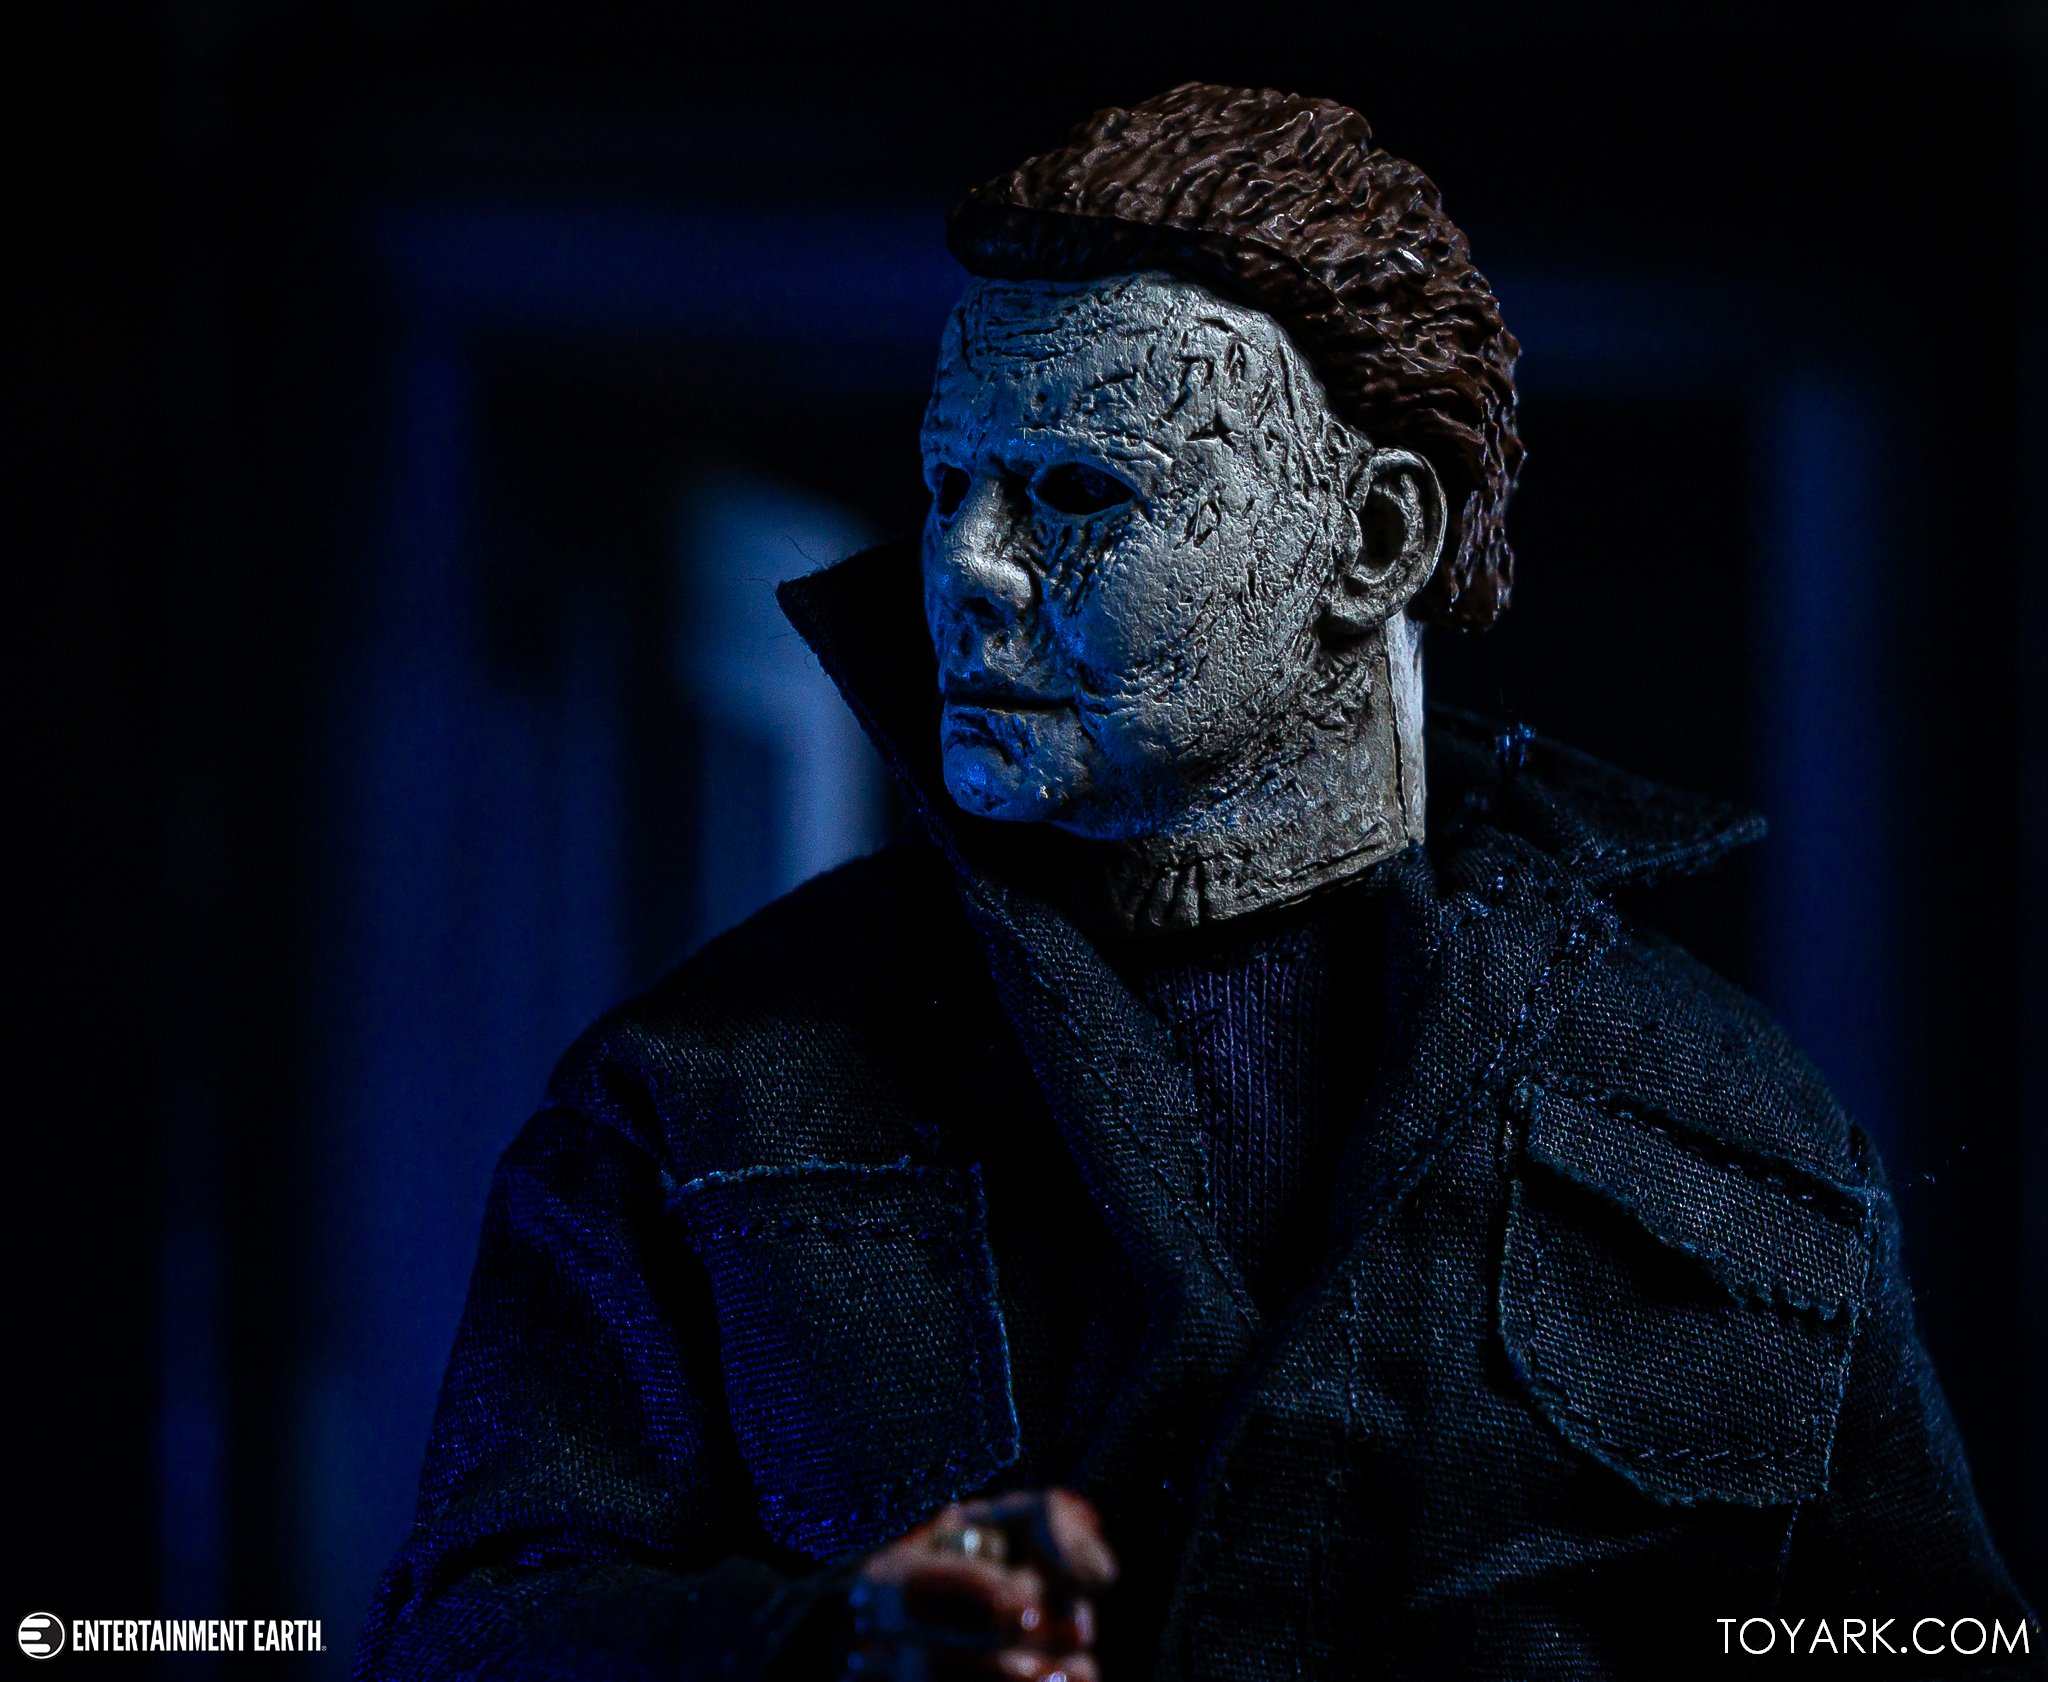 https://news.toyark.com/wp-content/uploads/sites/4/2020/01/Halloween-2018-Retro-Michael-Myers-016.jpg